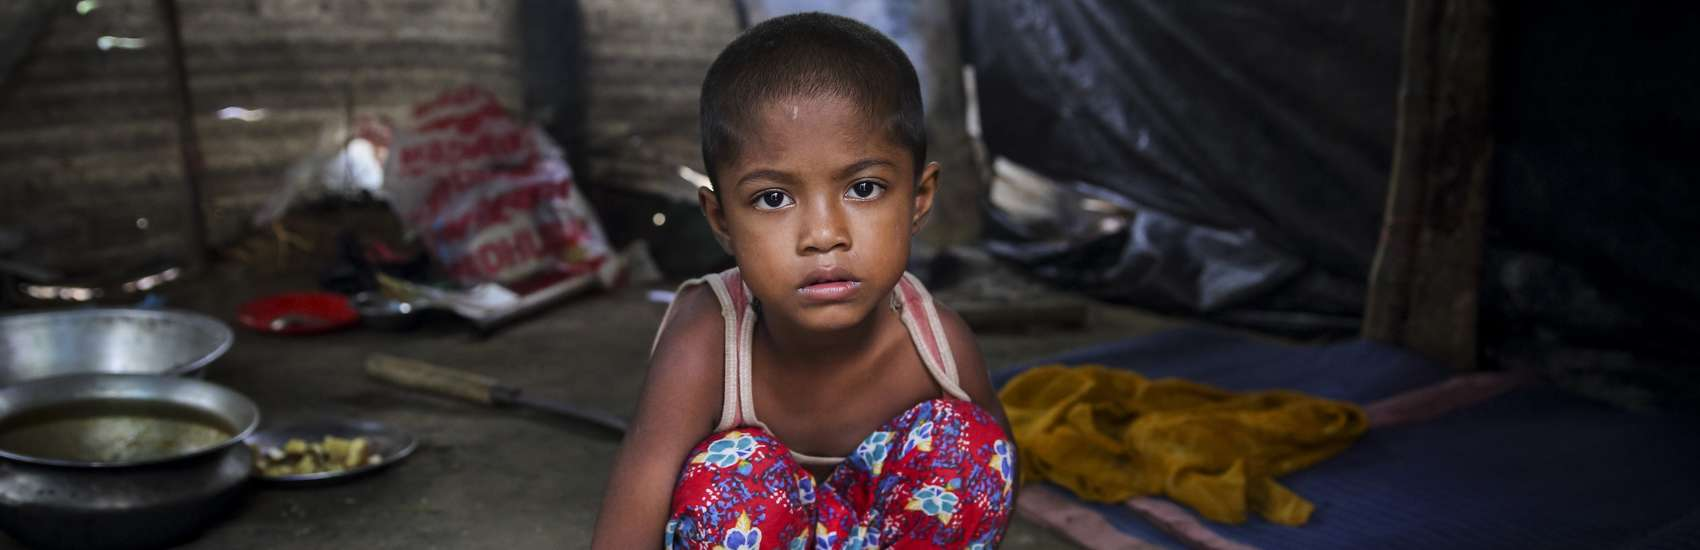 This five-year-old girl fled Myanmar with her family when their village was attacked. They're now living in a makeshift camp in Bangladesh. Children account for some 60% of the Rohingyas who've arrived in Bangladesh since the sudden and rapid escalation of violence in Myanmar. Photo Credit: GMB Akash/Save the Children, October 2017.